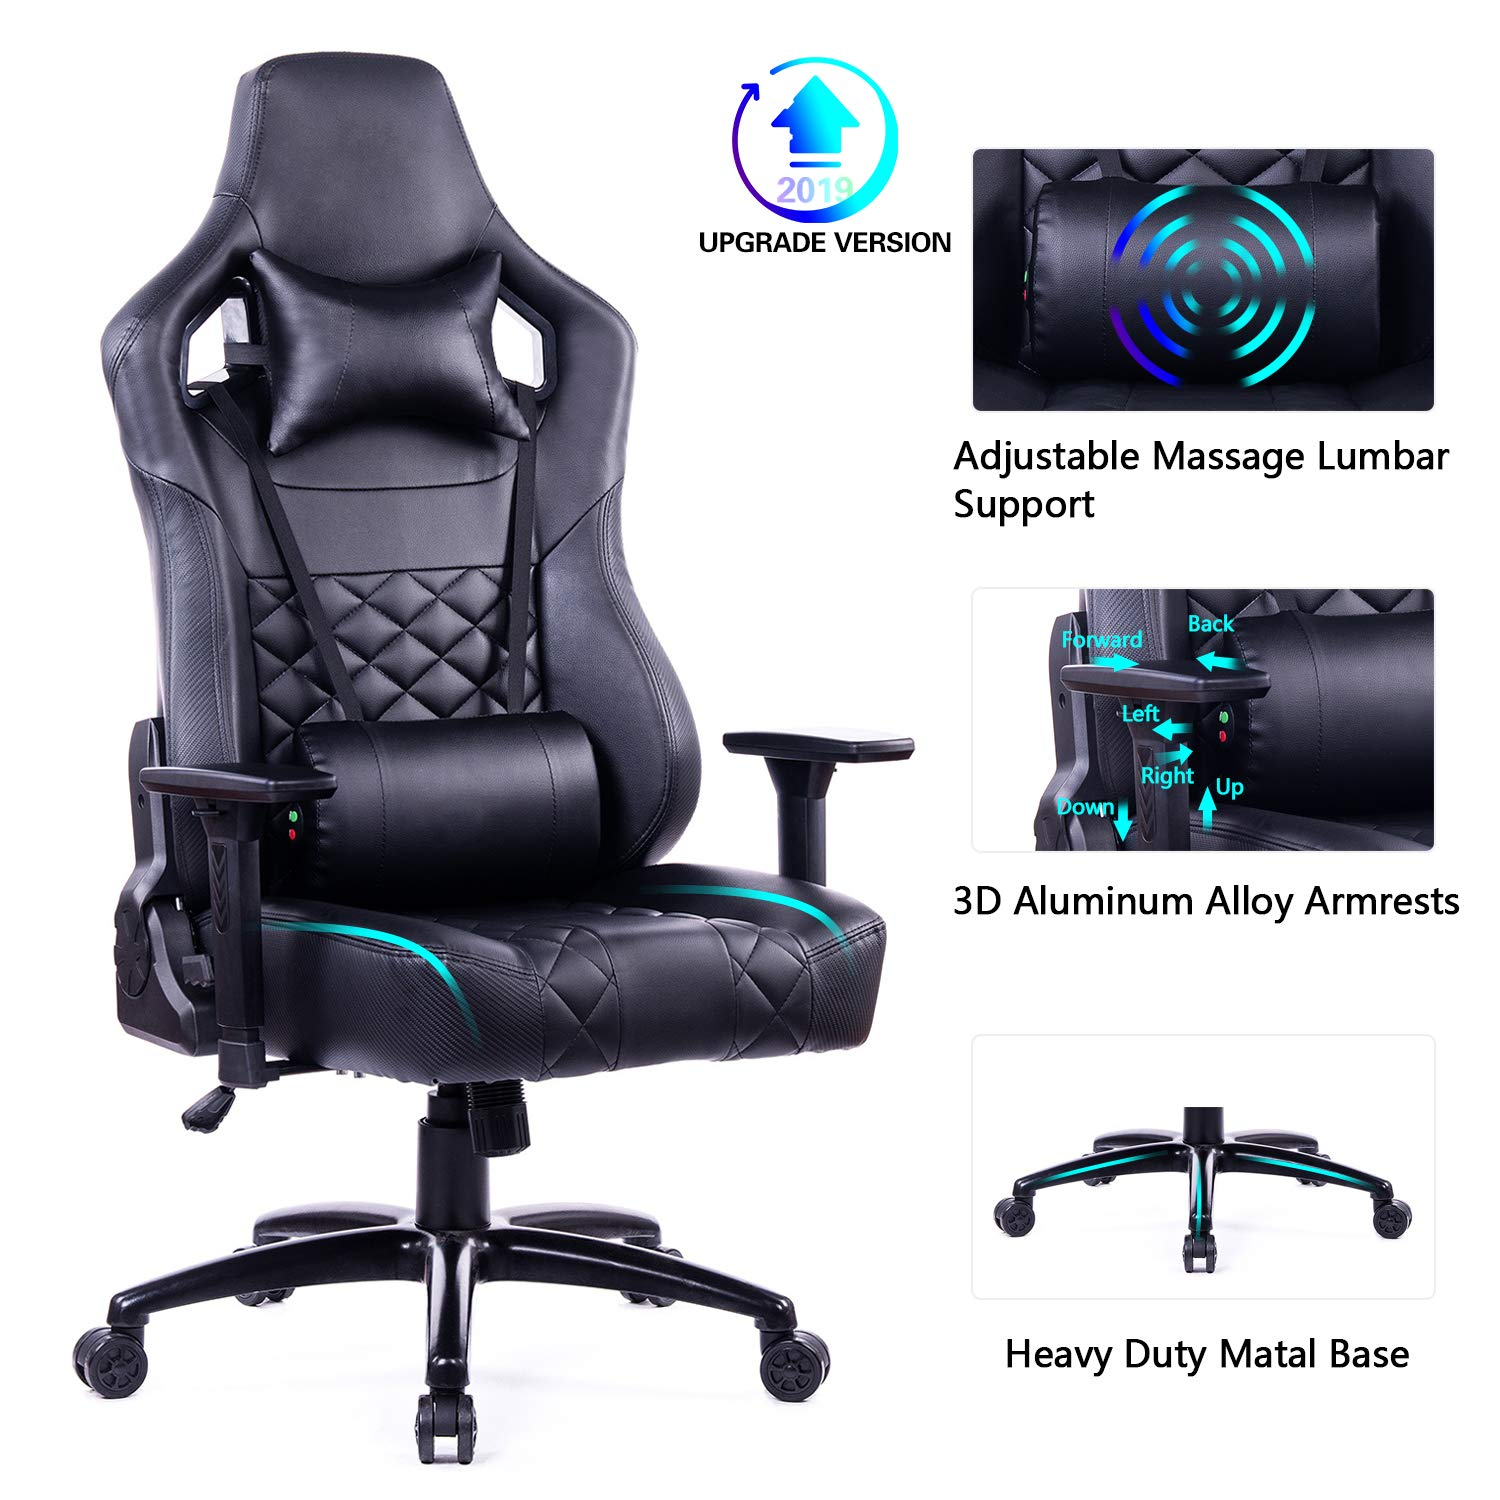 Blue Whale Big and Tall Gaming Chair with Massage Lumbar Support,Matel Base and 3D Aluminum Alloy Armrest Racing PC Computer Video Game Chair High Back PU Leather Office Desk Chair with Headrest Black by Blue Whale